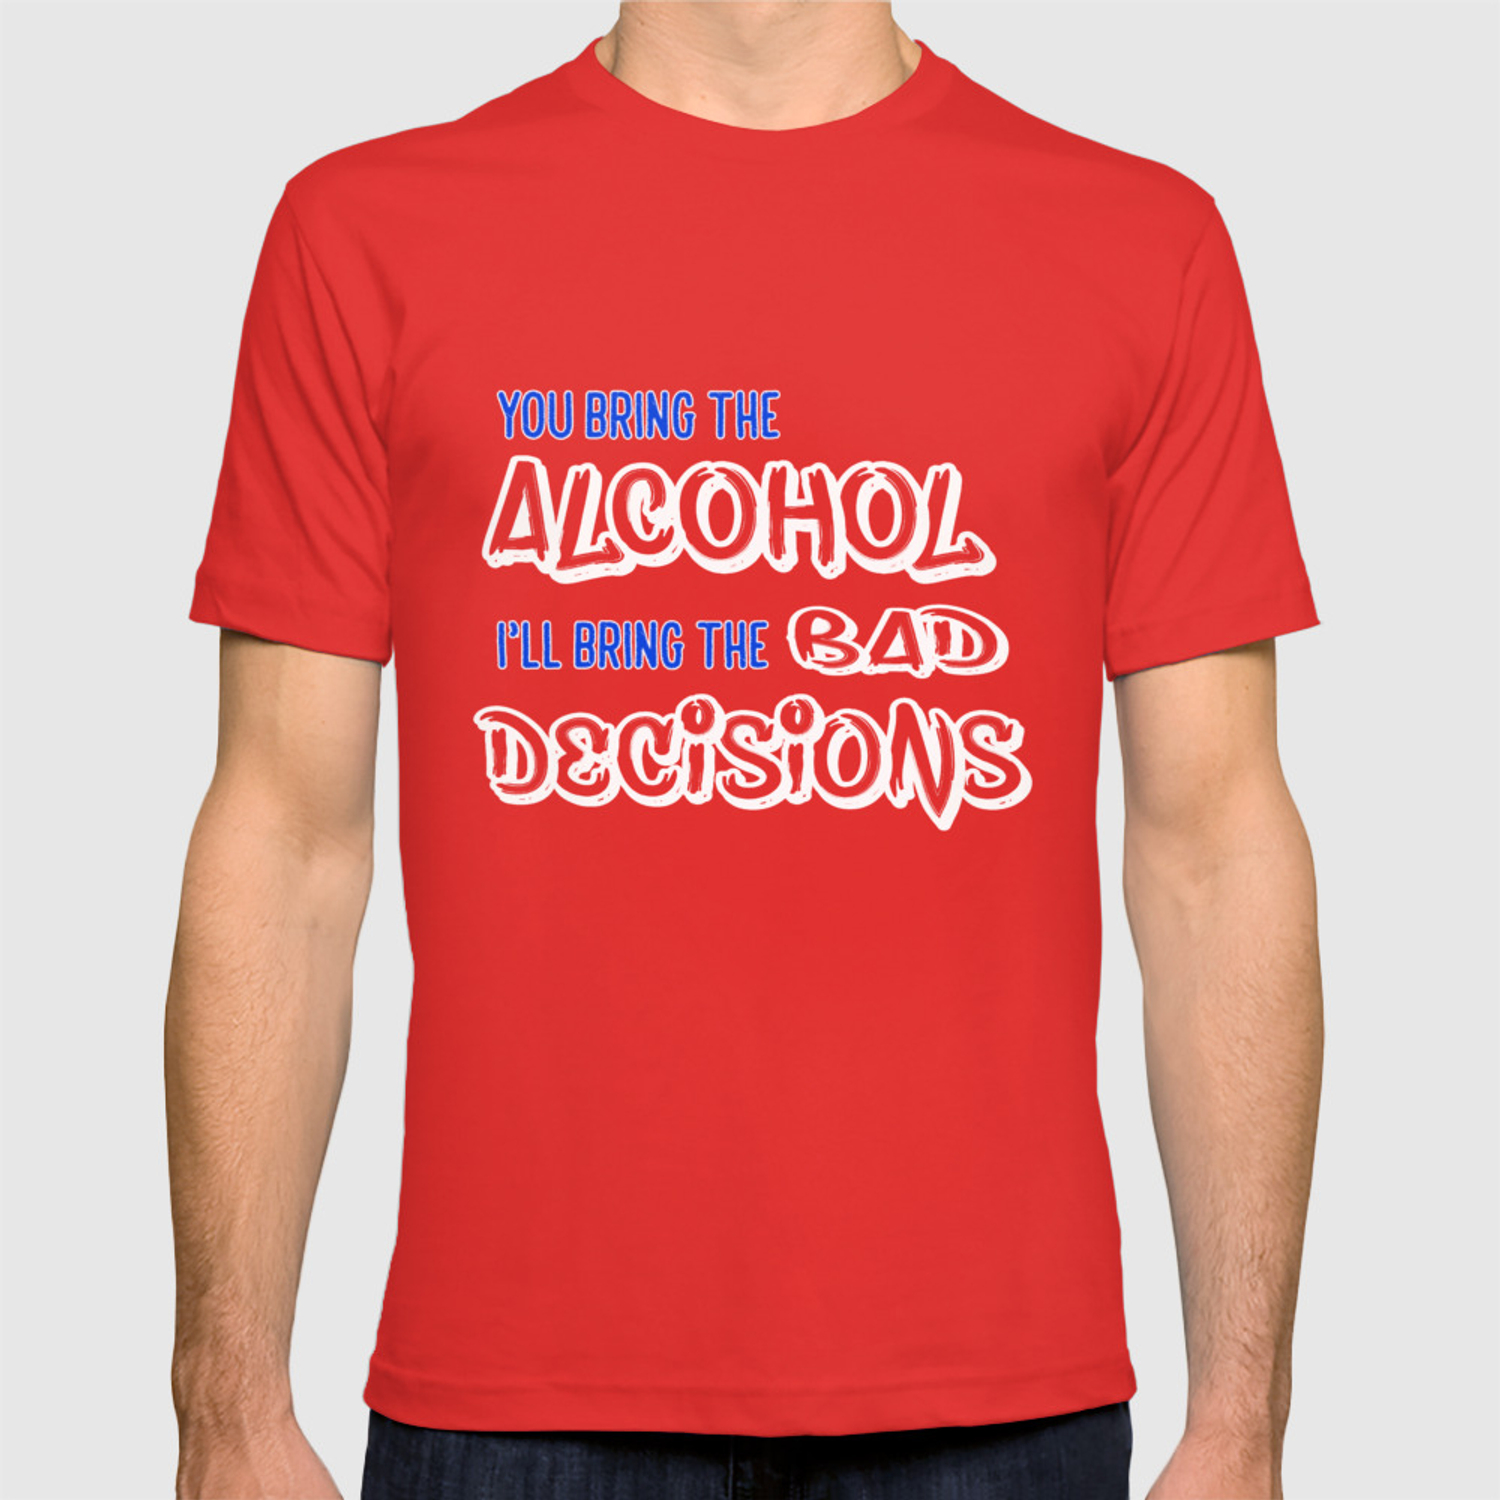 0a8a4e30a Alcohol T-Shirt Funny I'll Bring the Bad Decisions Gift Tee T-shirt by  amatees   Society6